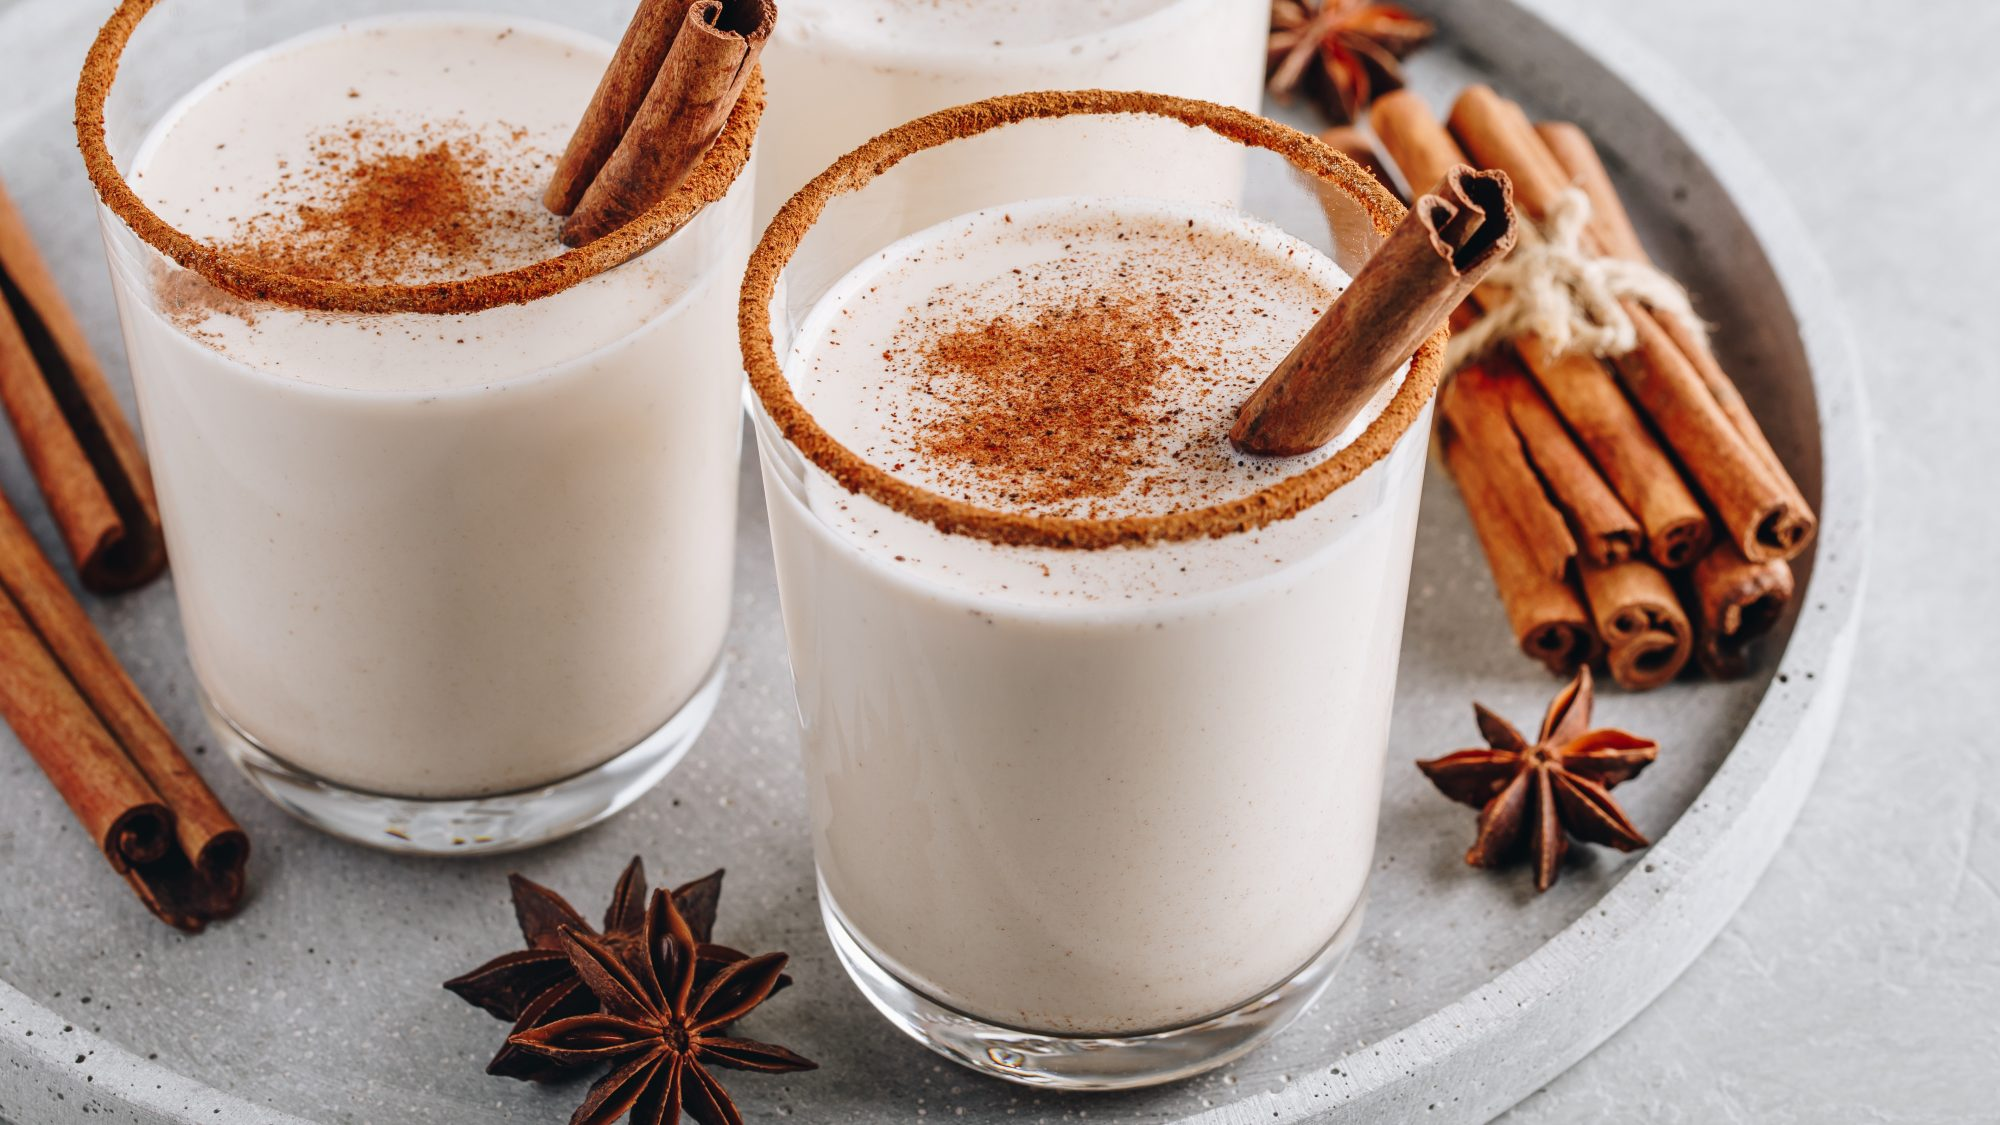 sugary-holiday-foods: Homemade vanilla Christmas drink Eggnog in glass with grated nutmeg and cinnamon sticks